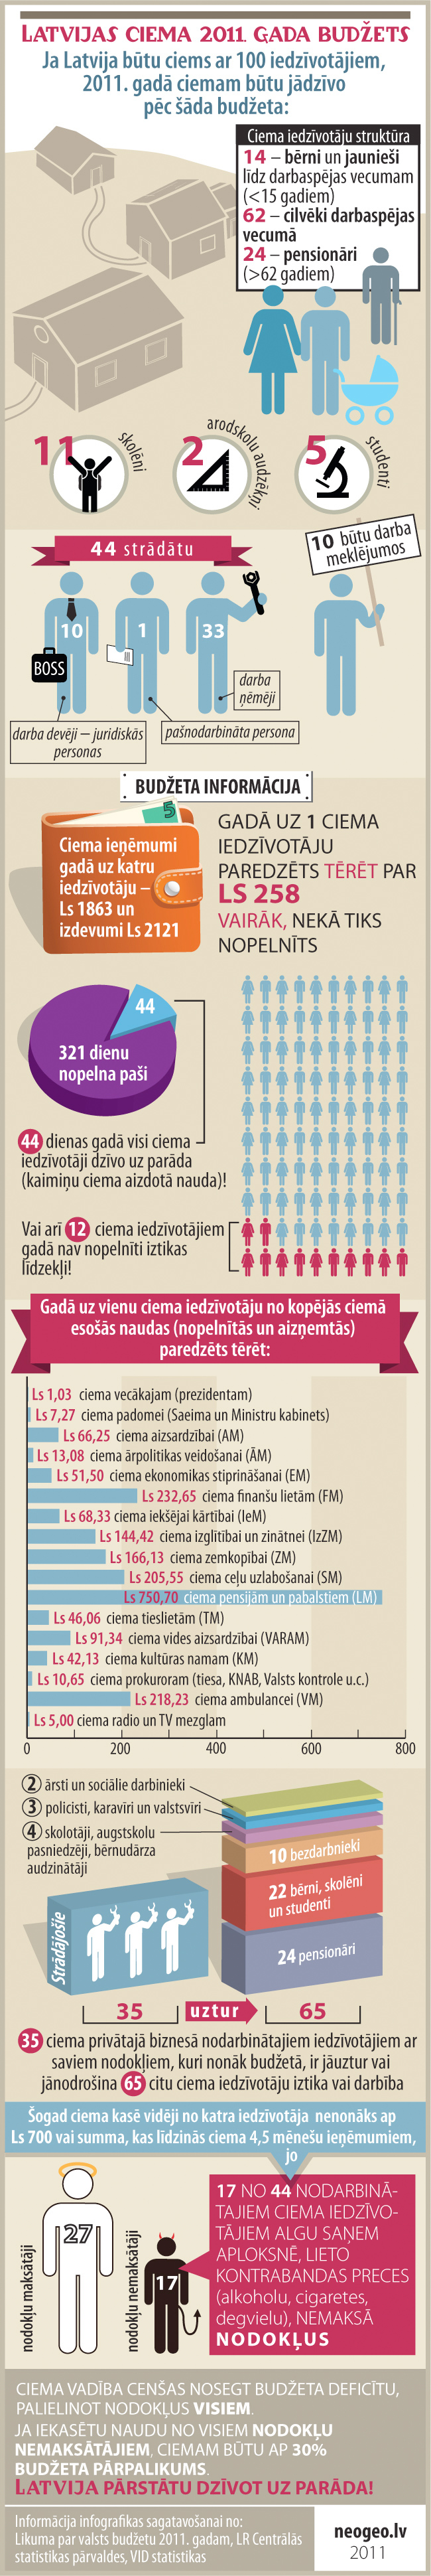 Infografika: Latvijas ciema 2011. gada budžets / Infographic: Latvia as a village of hundred people